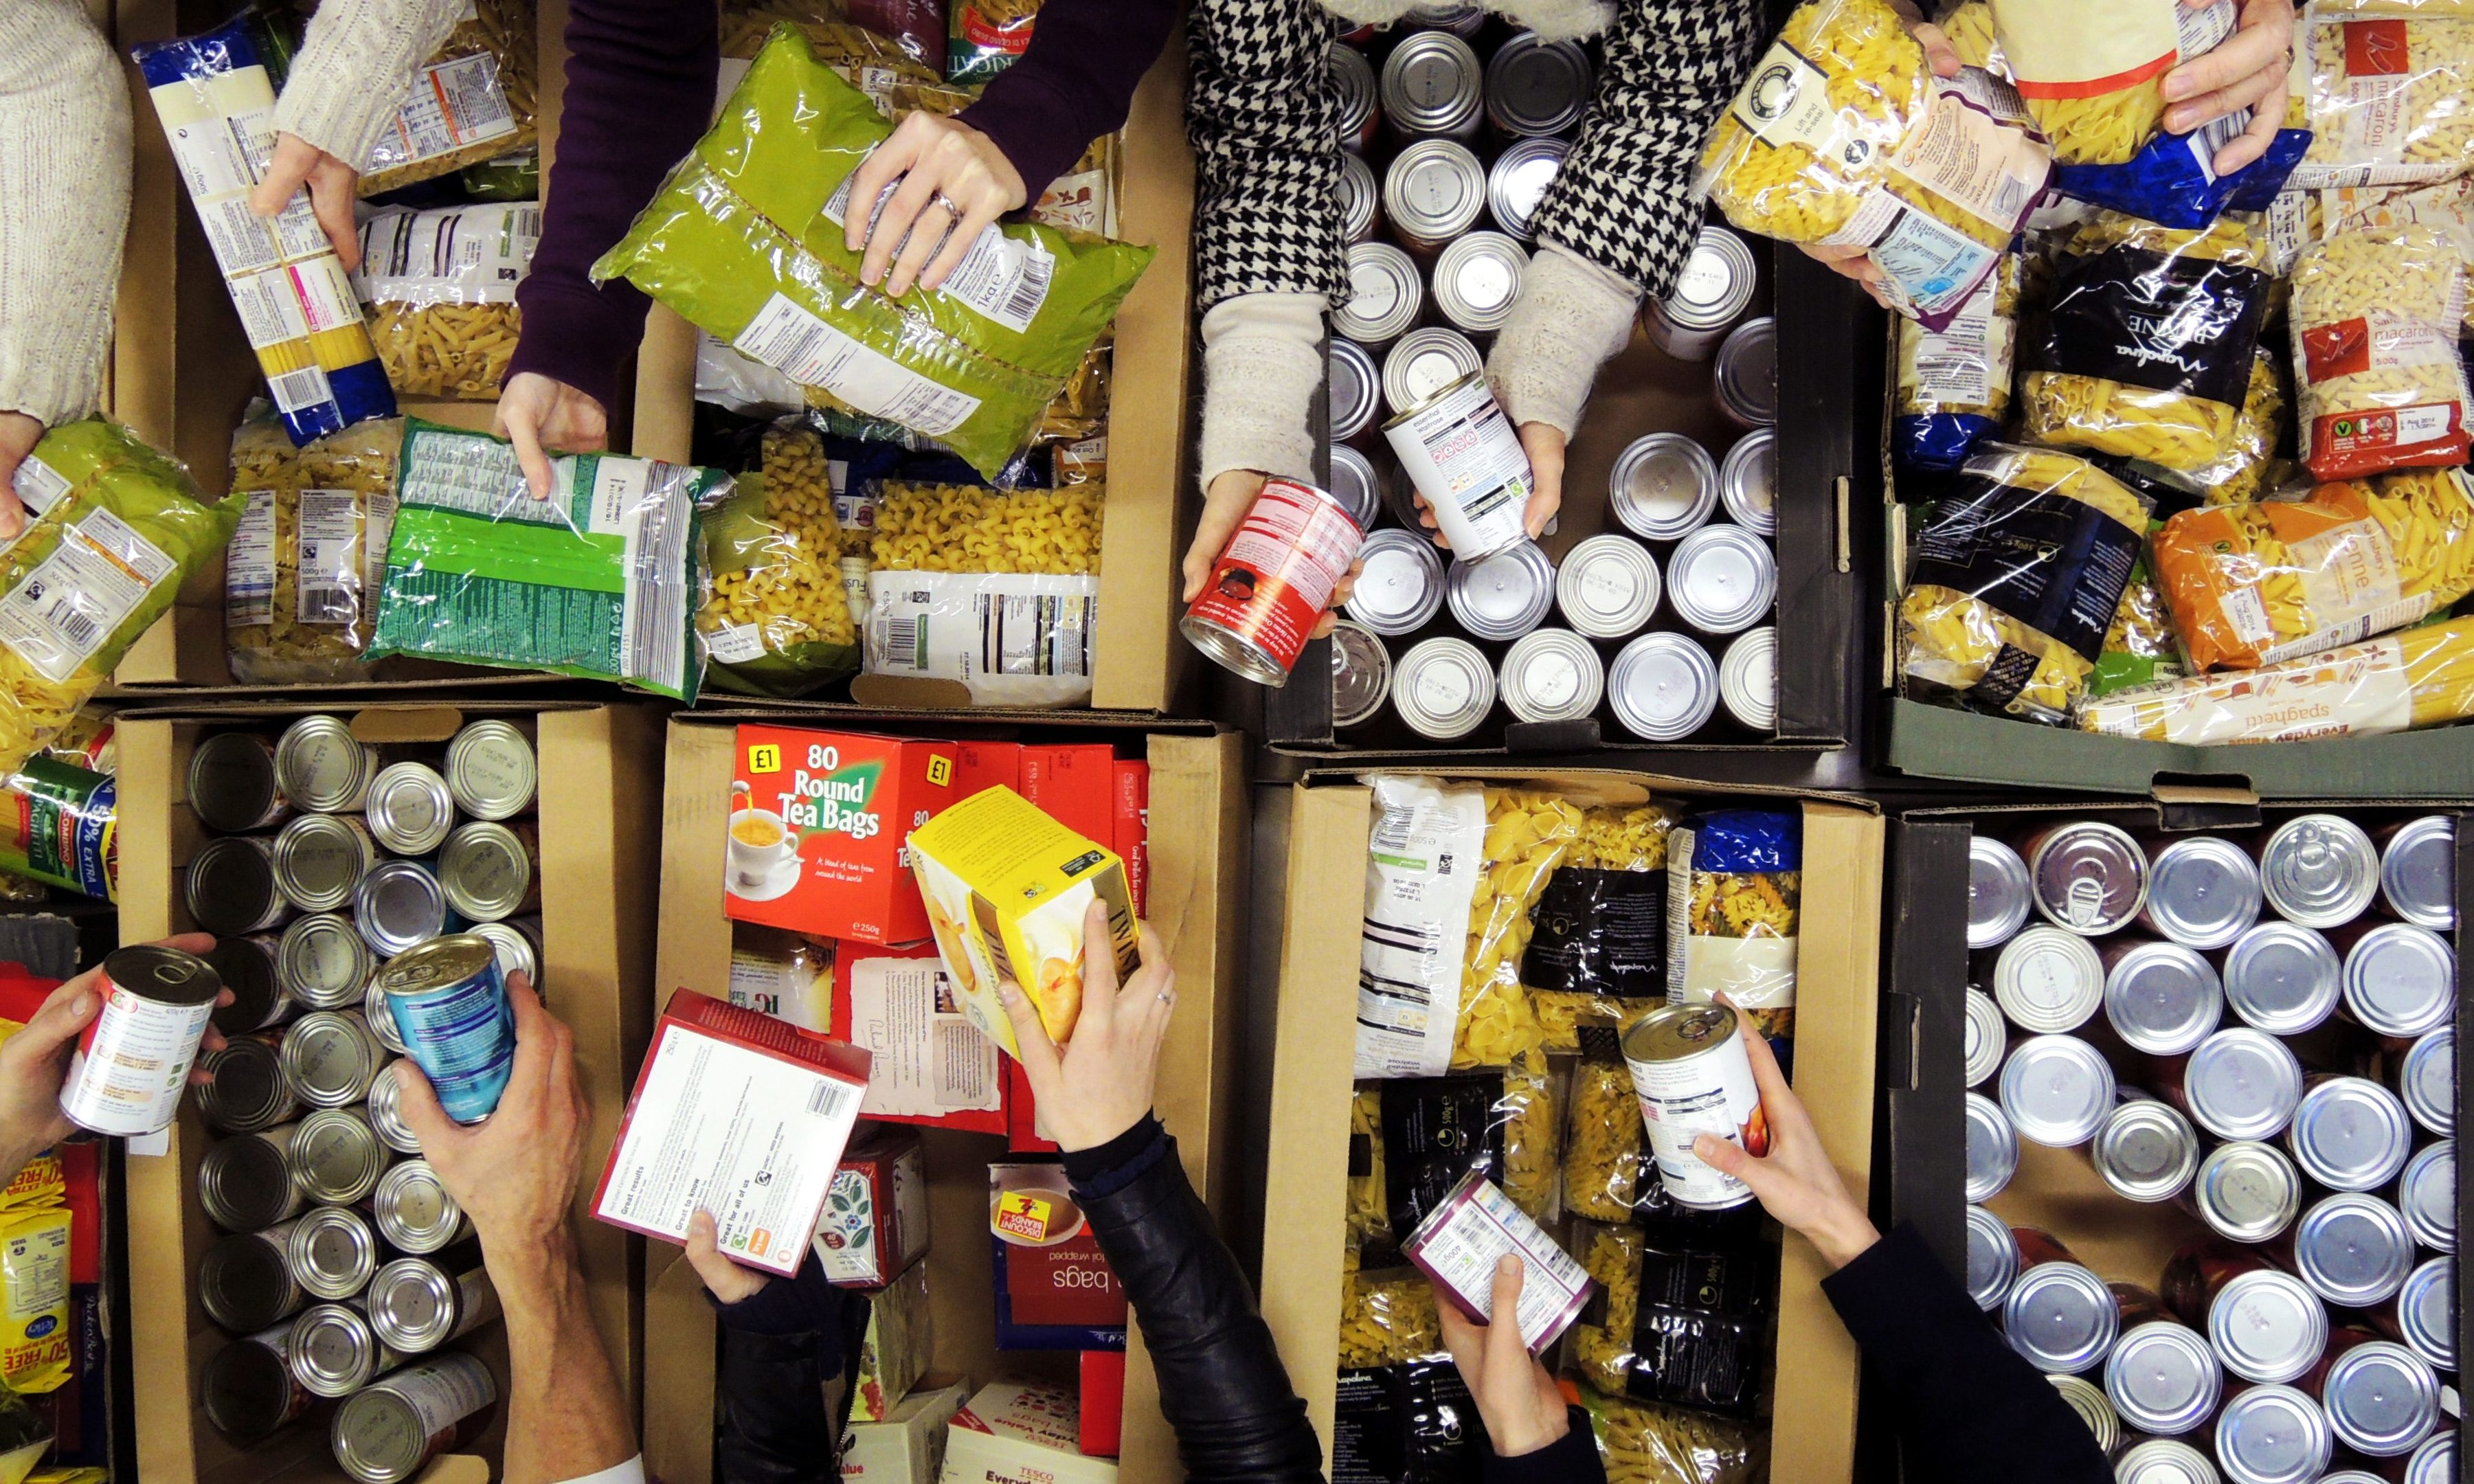 Some Scottish families rely heavily on the service provided by foodbanks.